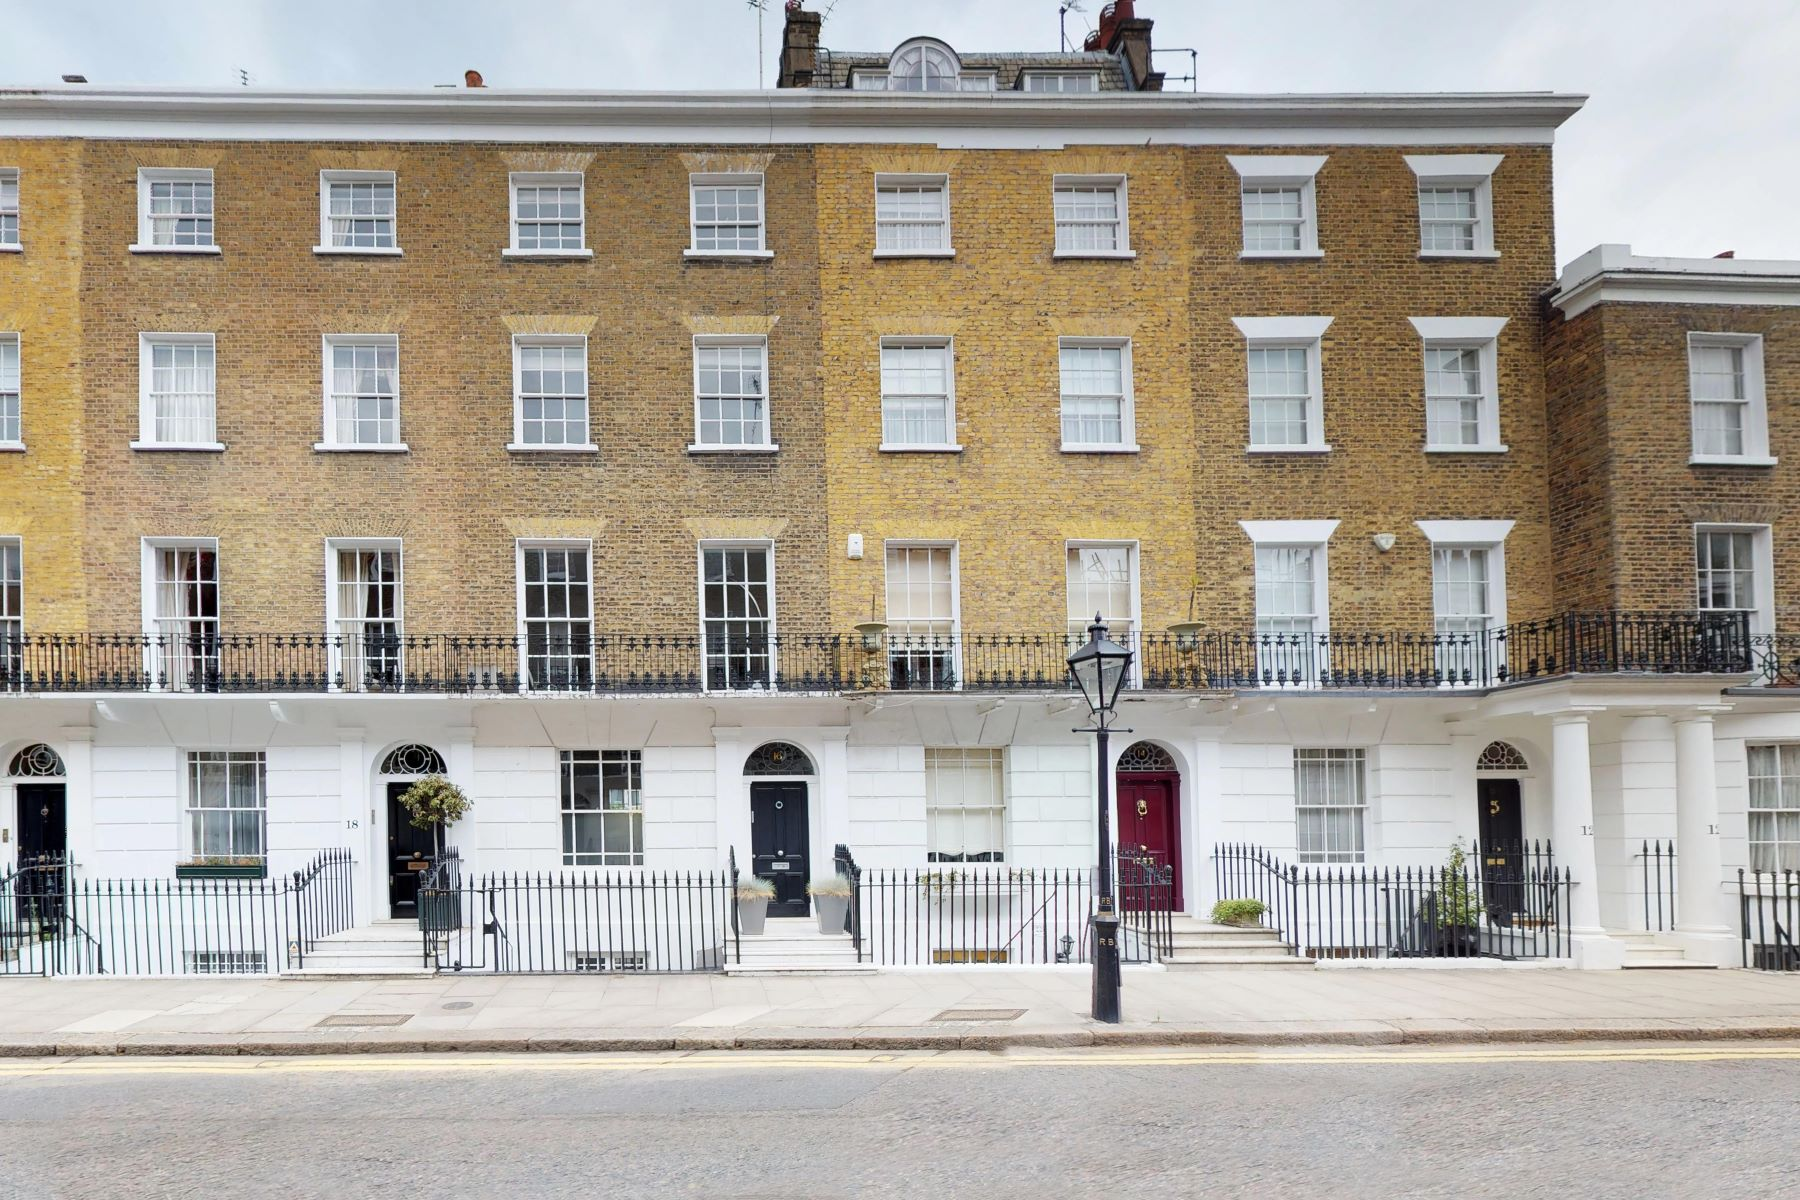 townhouses for Sale at 16 Alexander Place Other England, England SW7 2SF United Kingdom